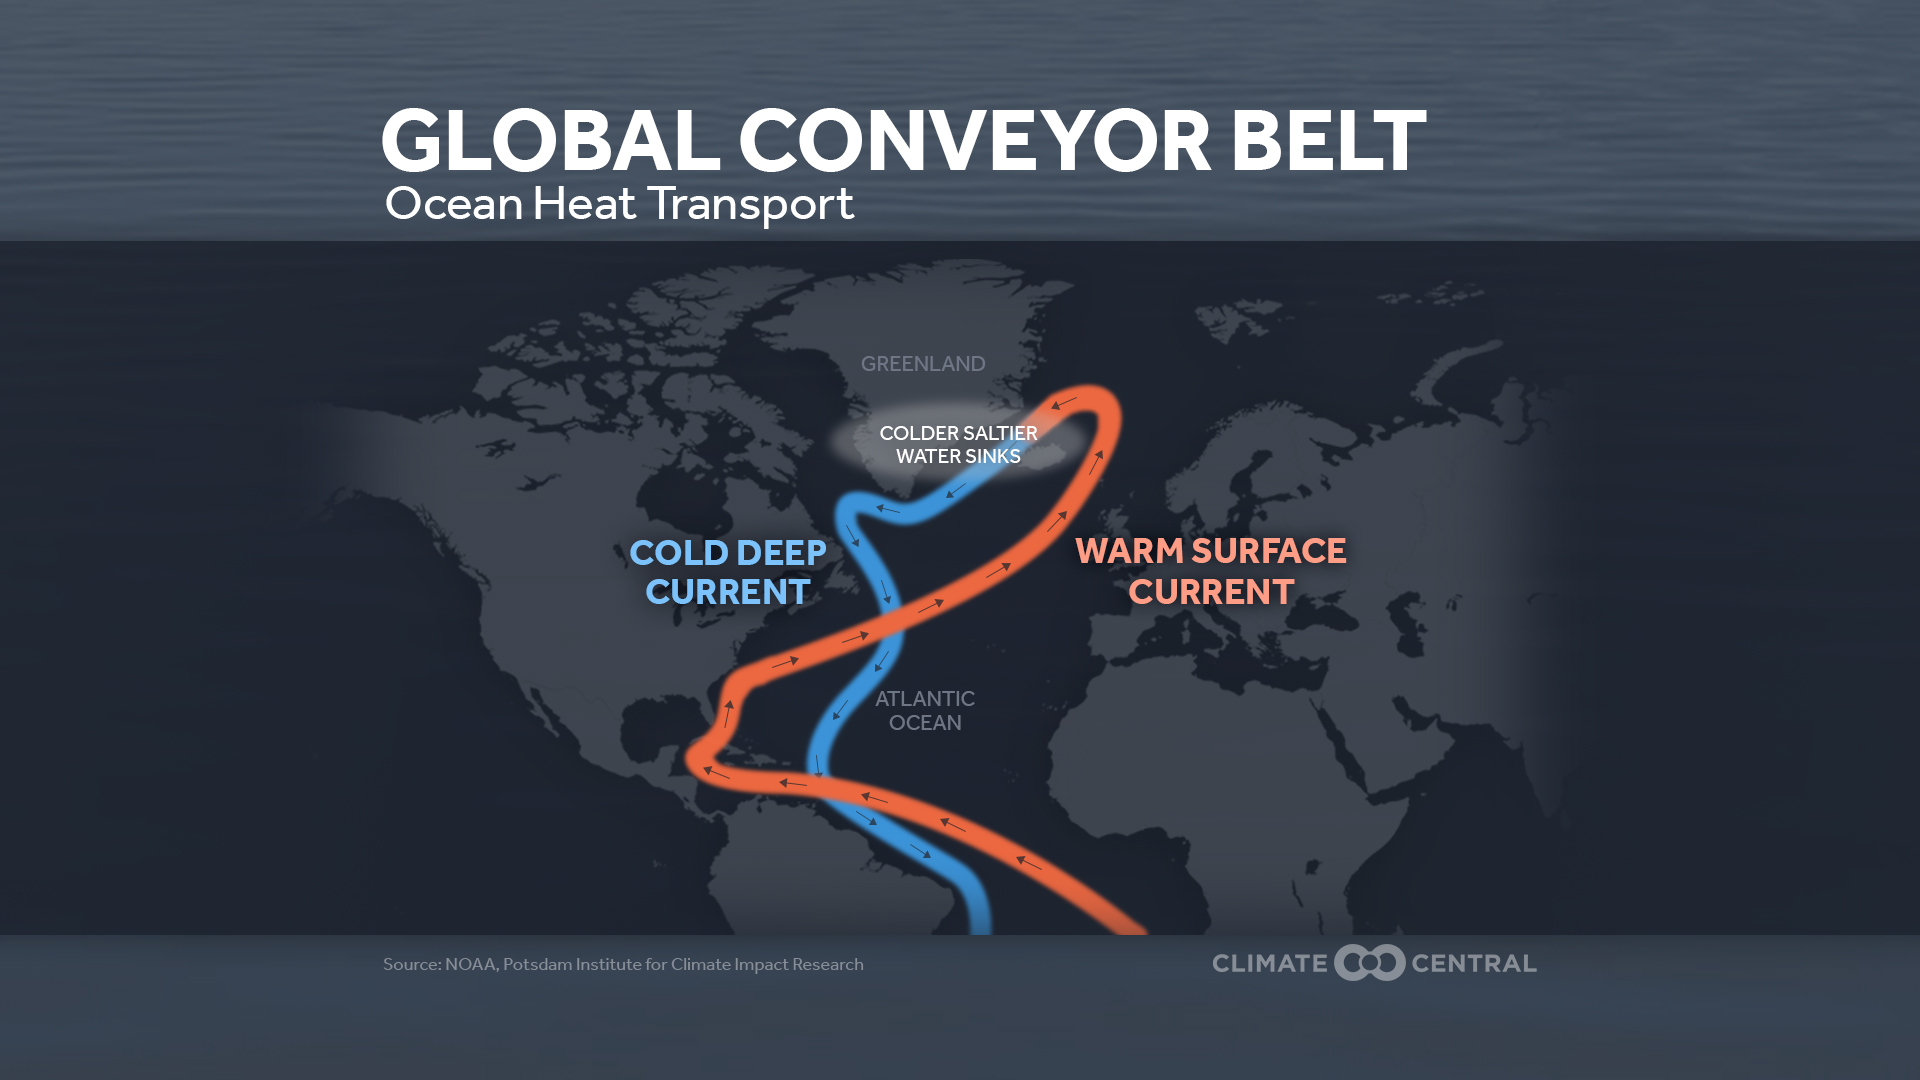 Global conveyer belt ocean current slowing climate central this thermohaline circulation also known as the global ocean conveyor belt involves both surface and deep water throughout the global ocean gumiabroncs Images